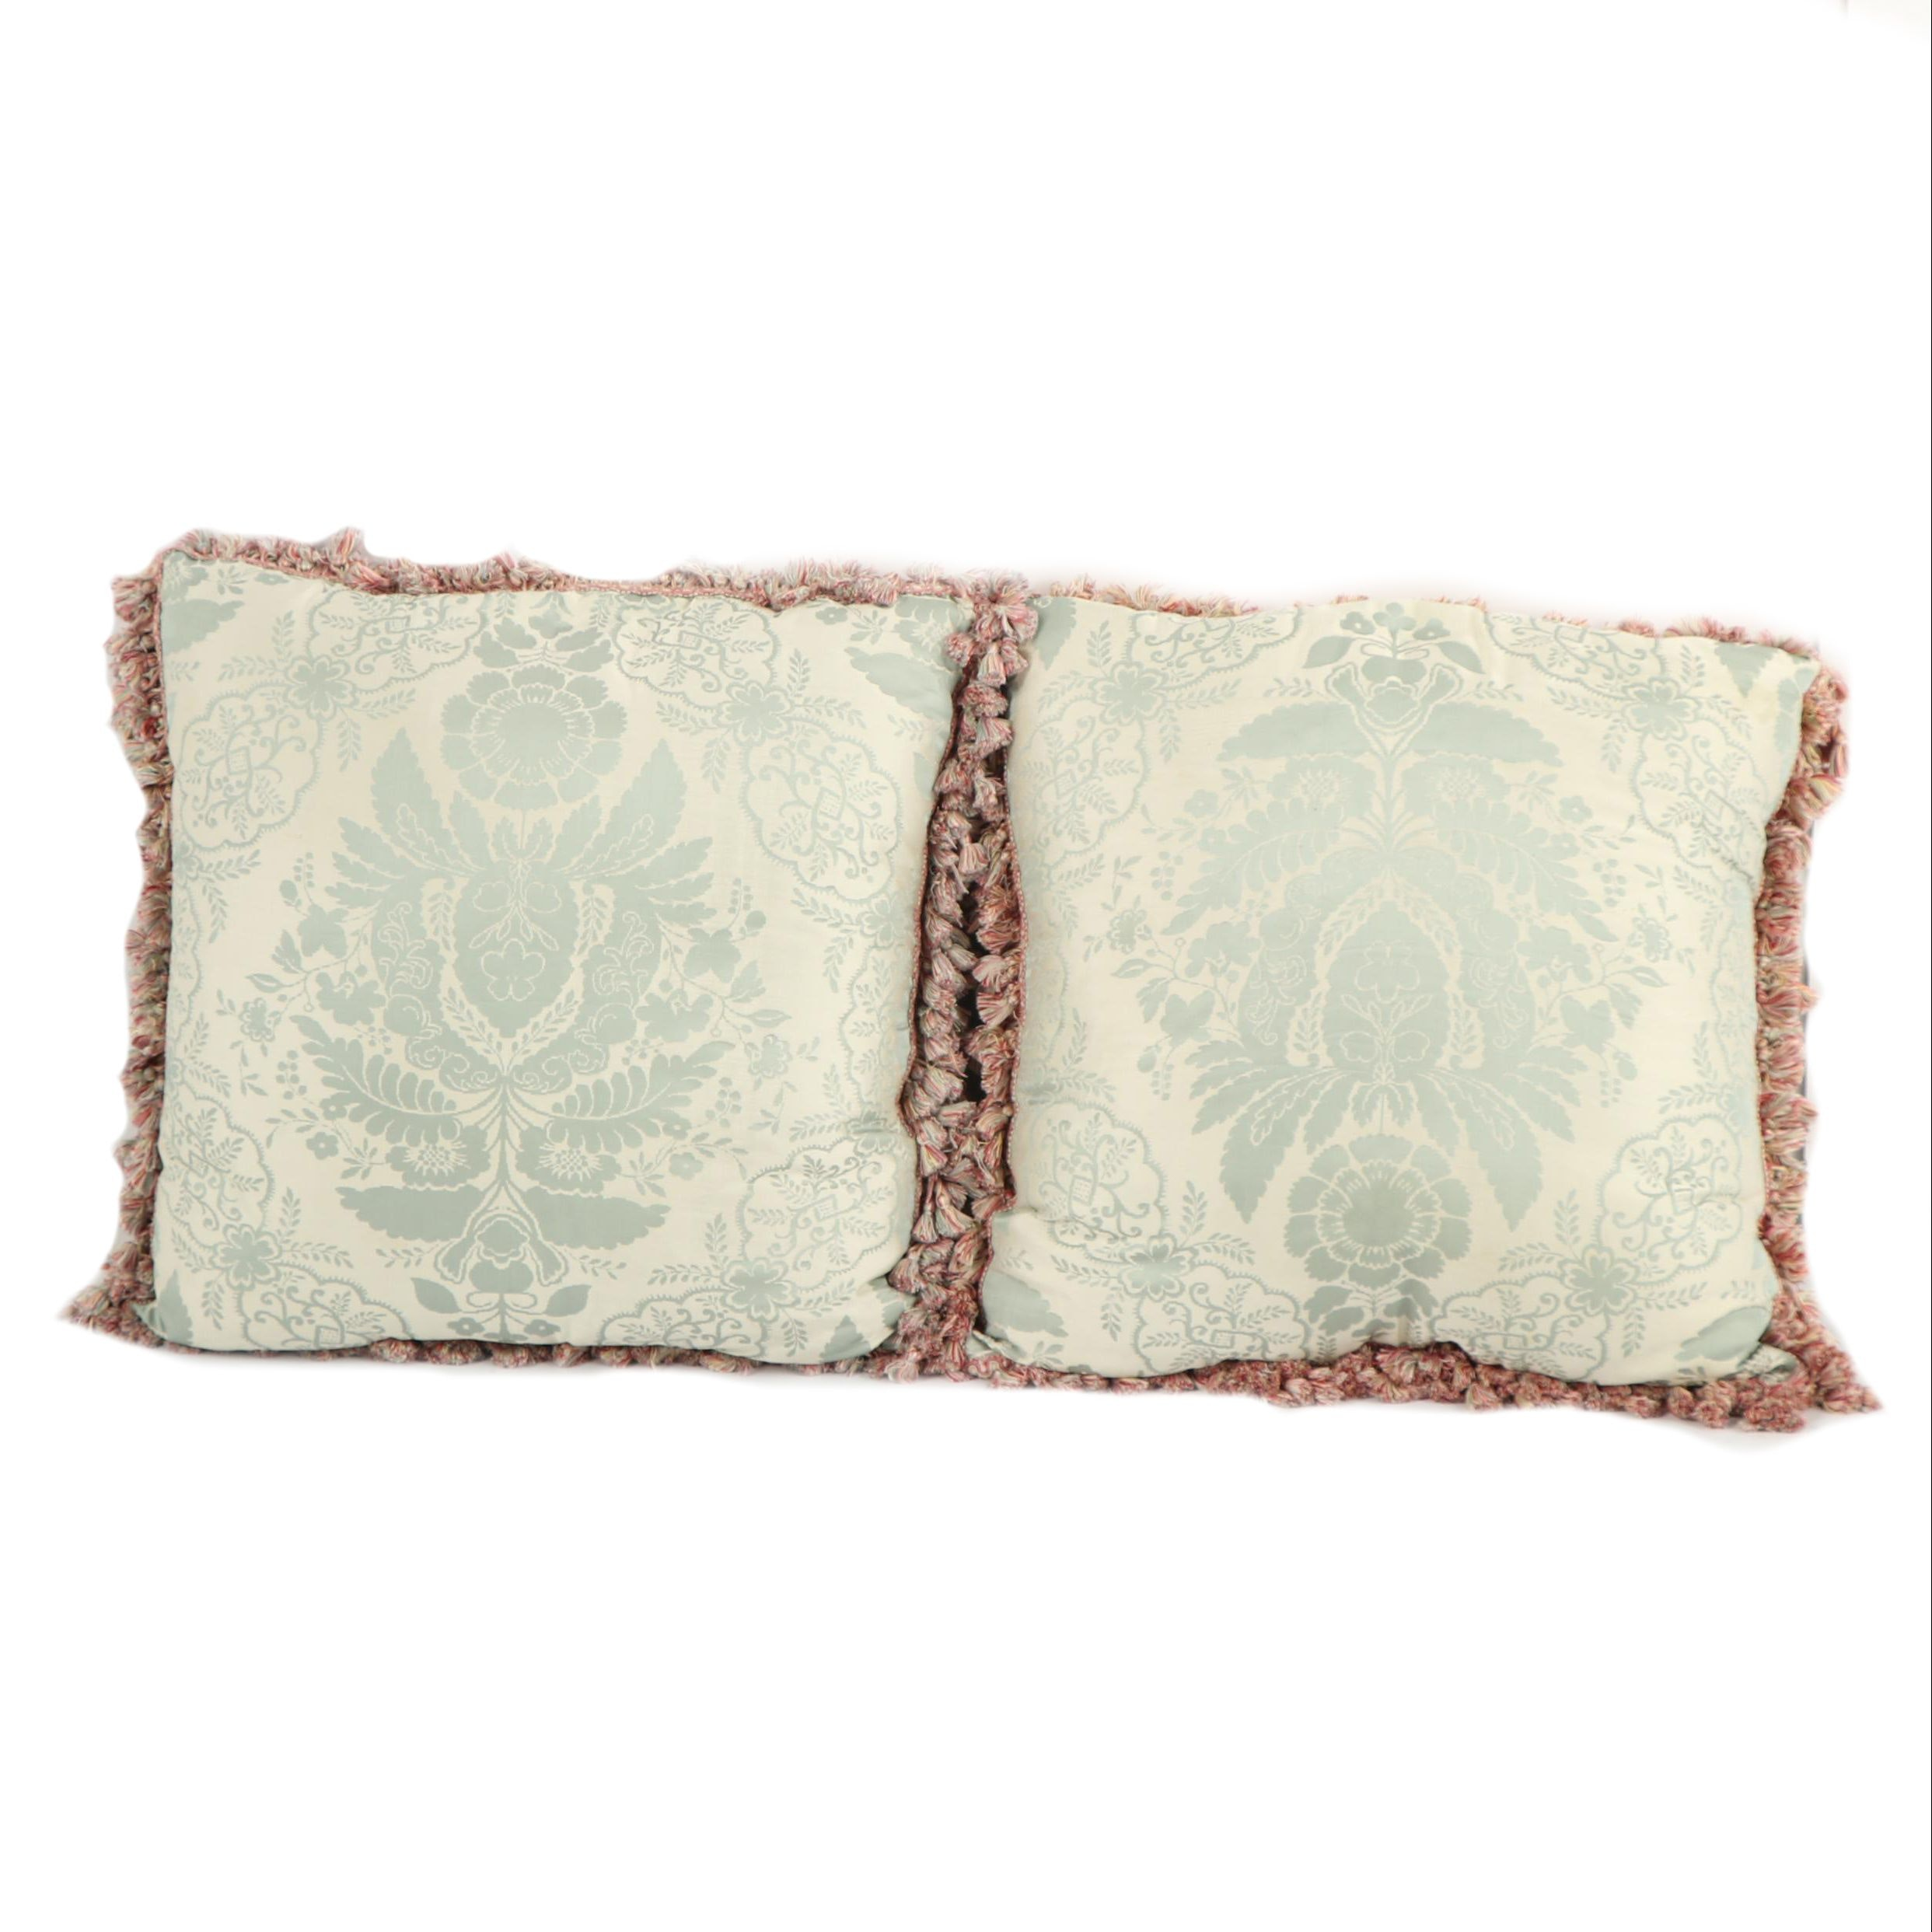 Damask and Moire Throw Pillows with Fringe